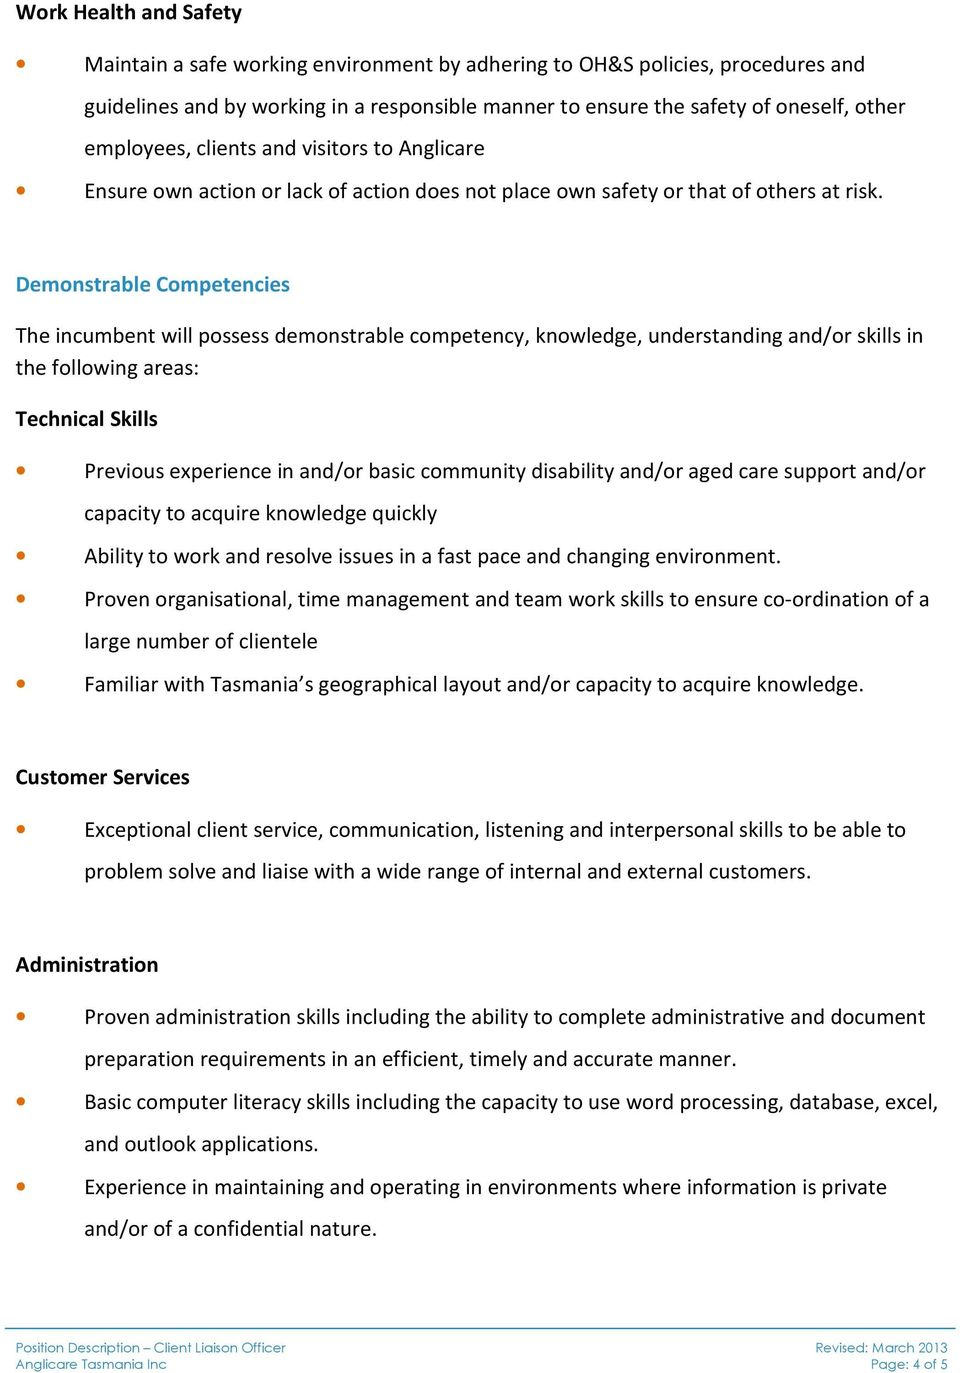 Demonstrable Competencies The incumbent will possess demonstrable competency, knowledge, understanding and/or skills in the following areas: Technical Skills Previous experience in and/or basic